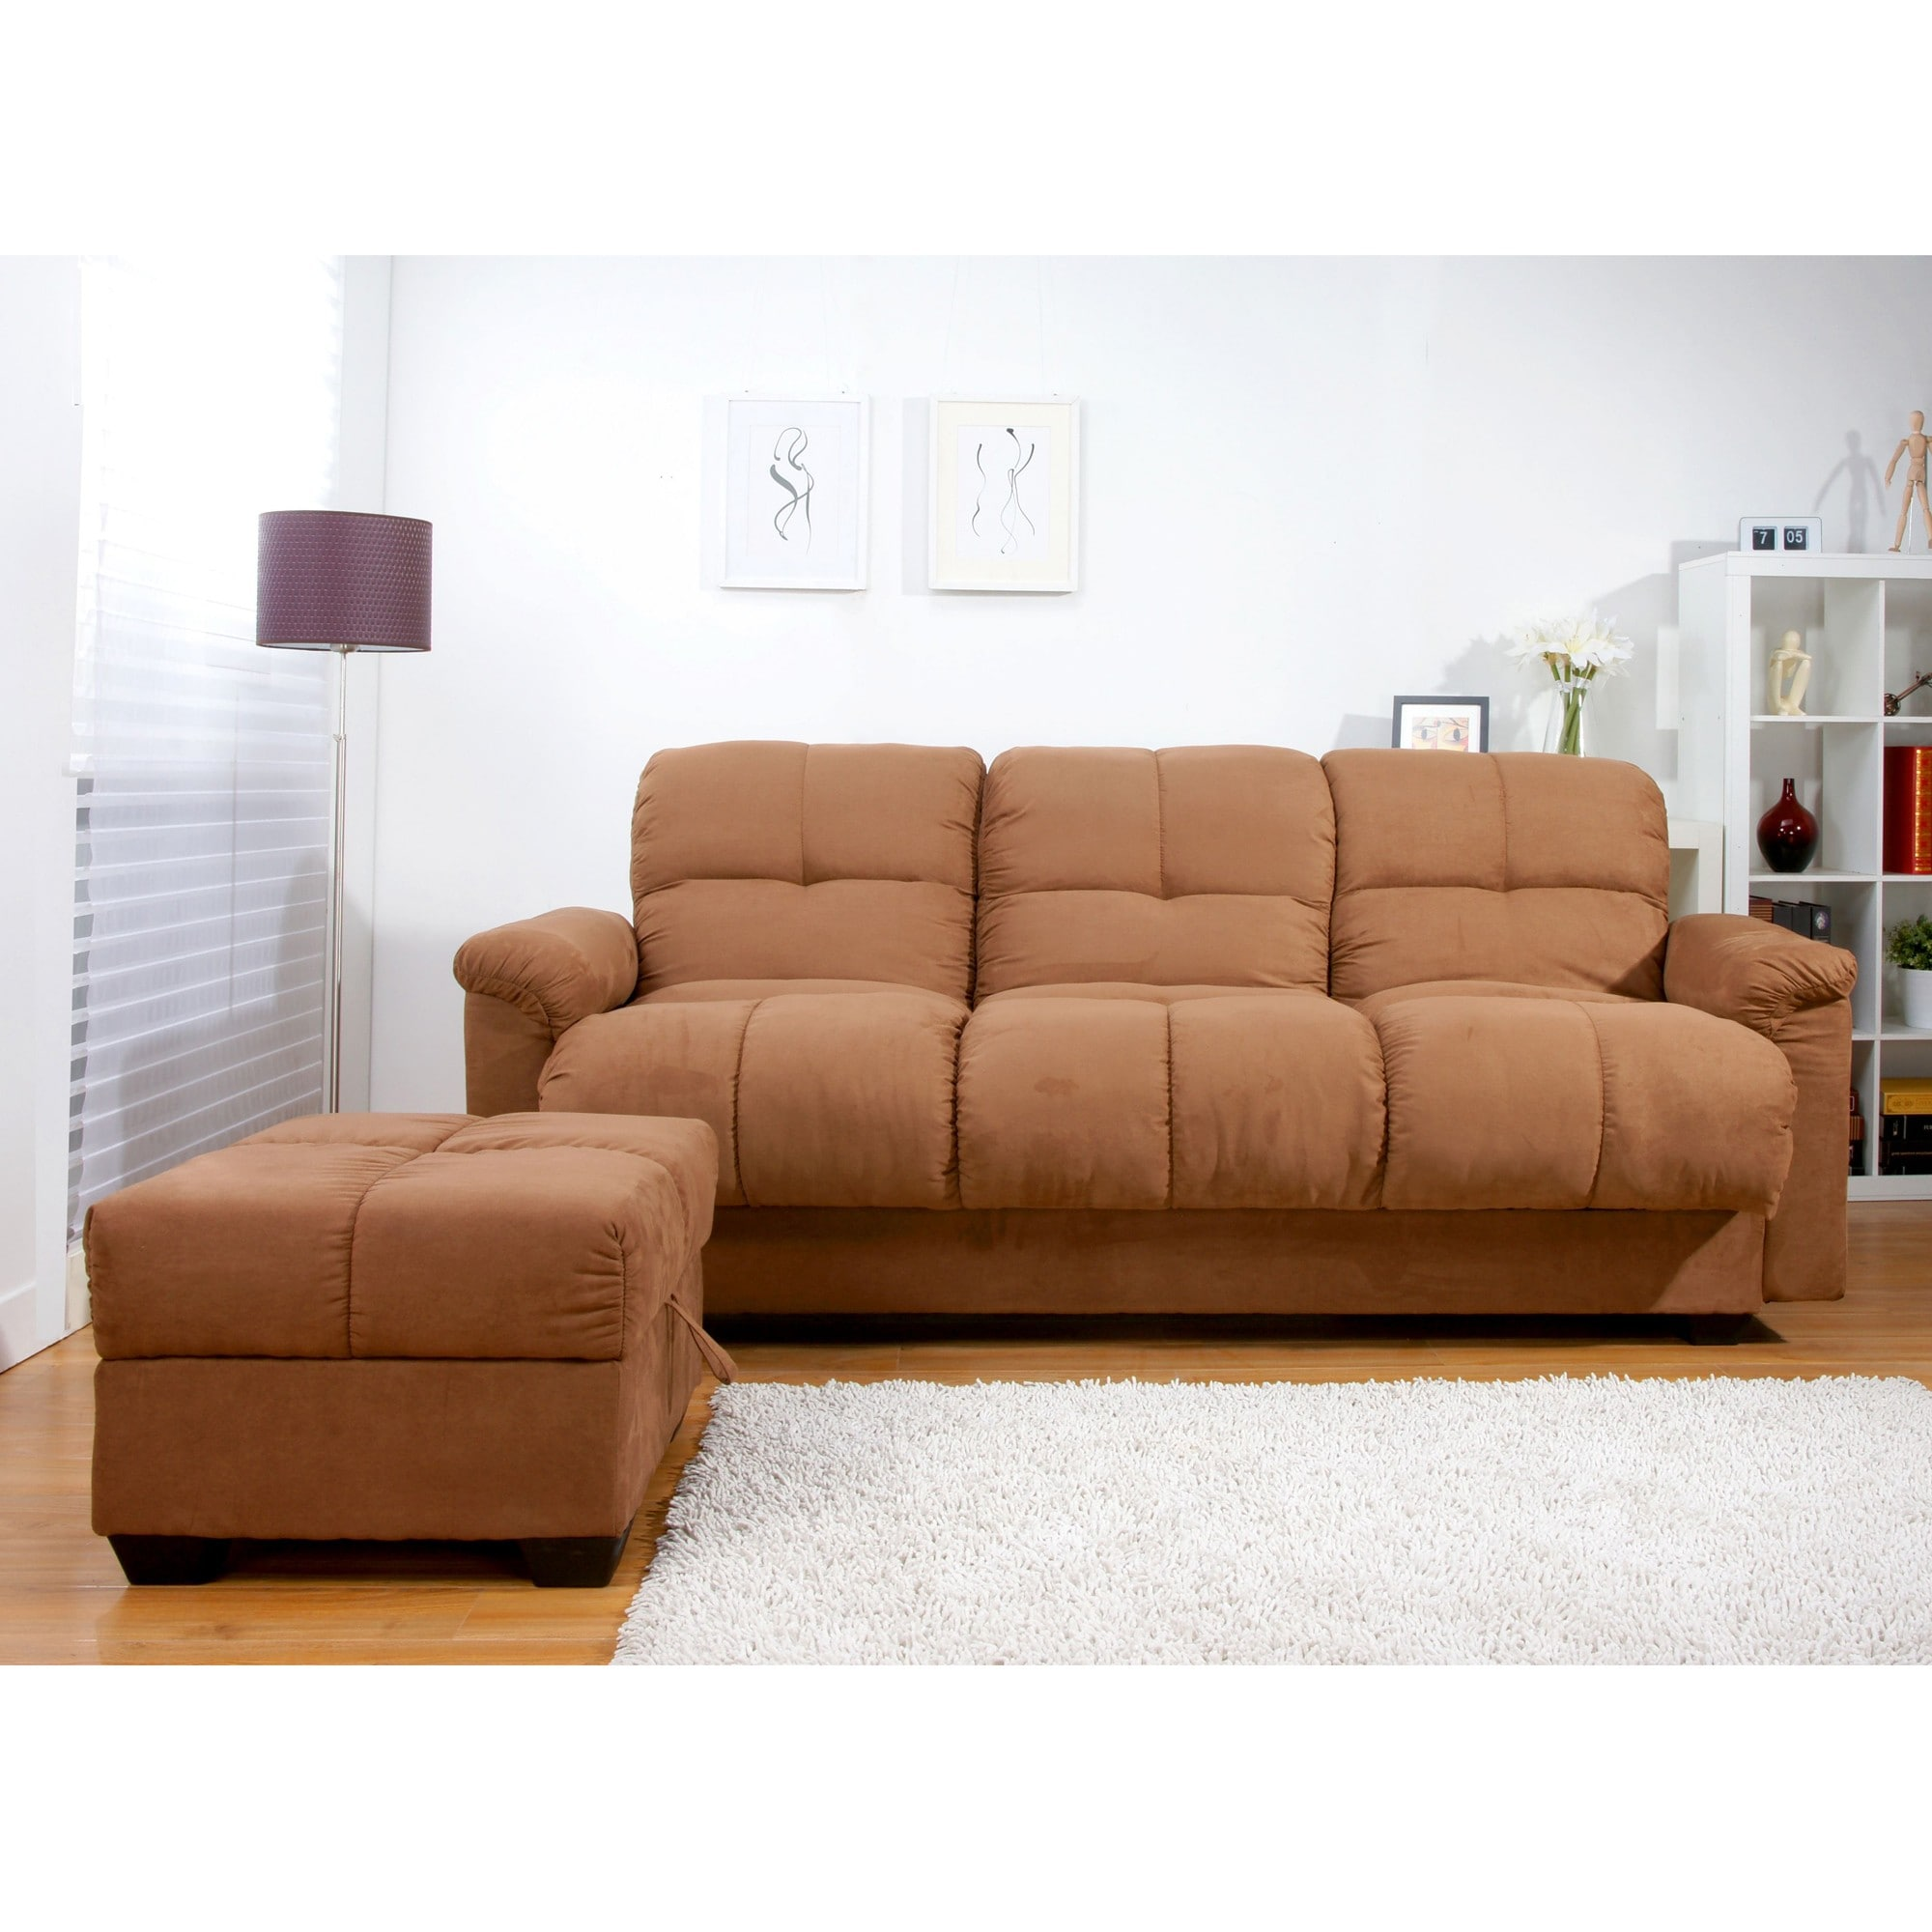 Multifunctional Microsuede Sofa Bed and Ottoman Set at Sears.com